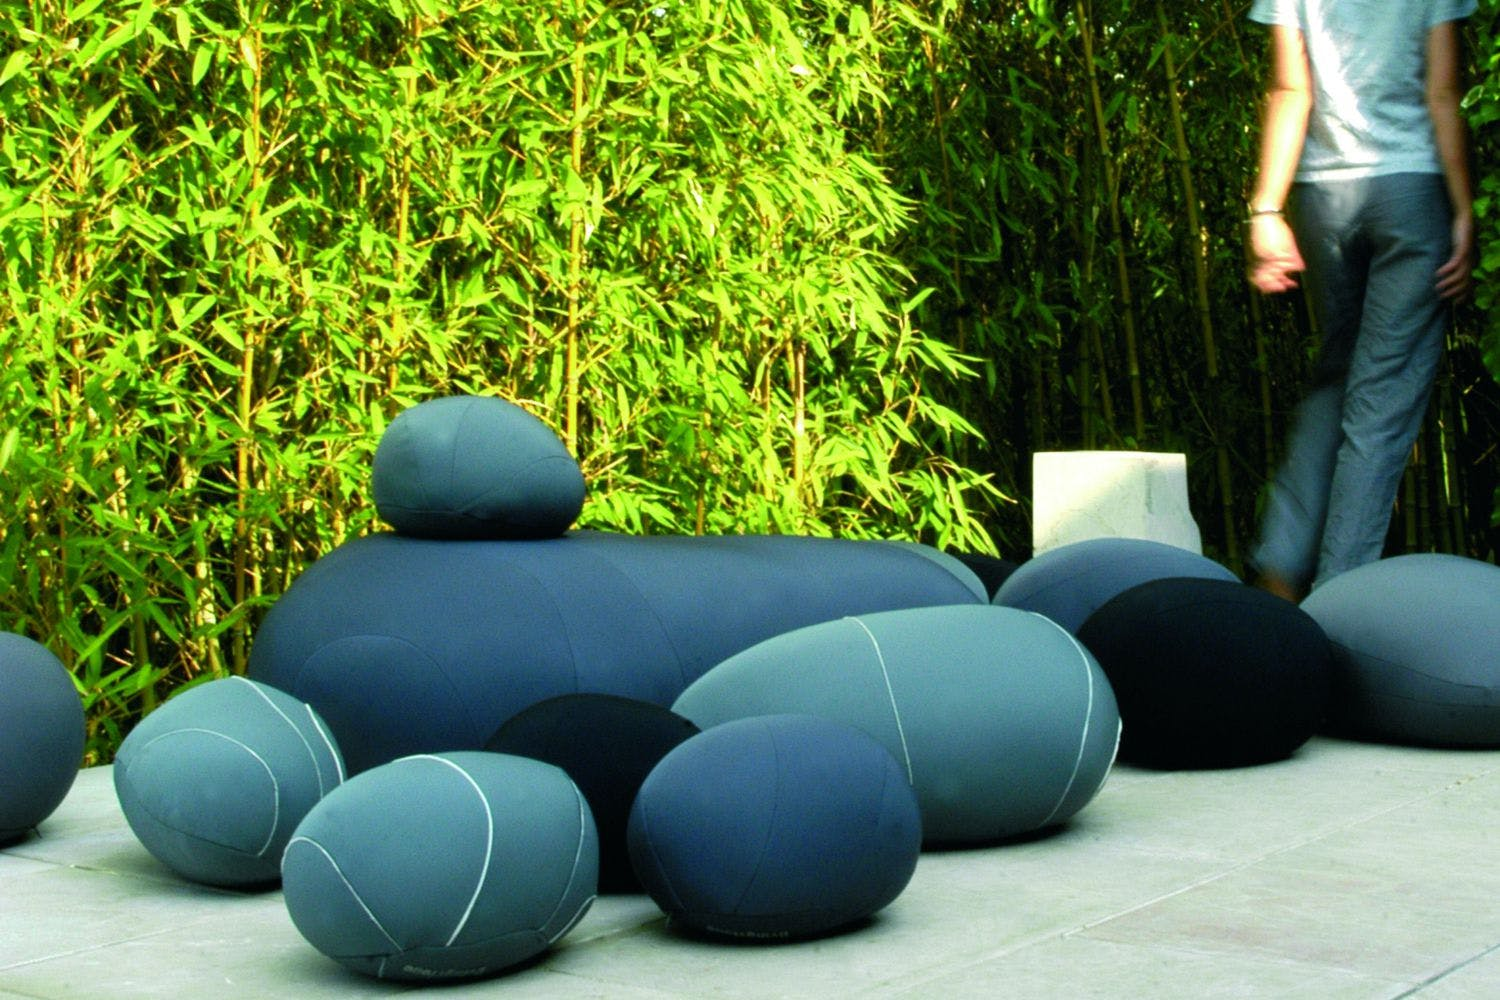 Neolivingstones Floor Cushion by Stephanie Marin for Smarin Poliform Australia